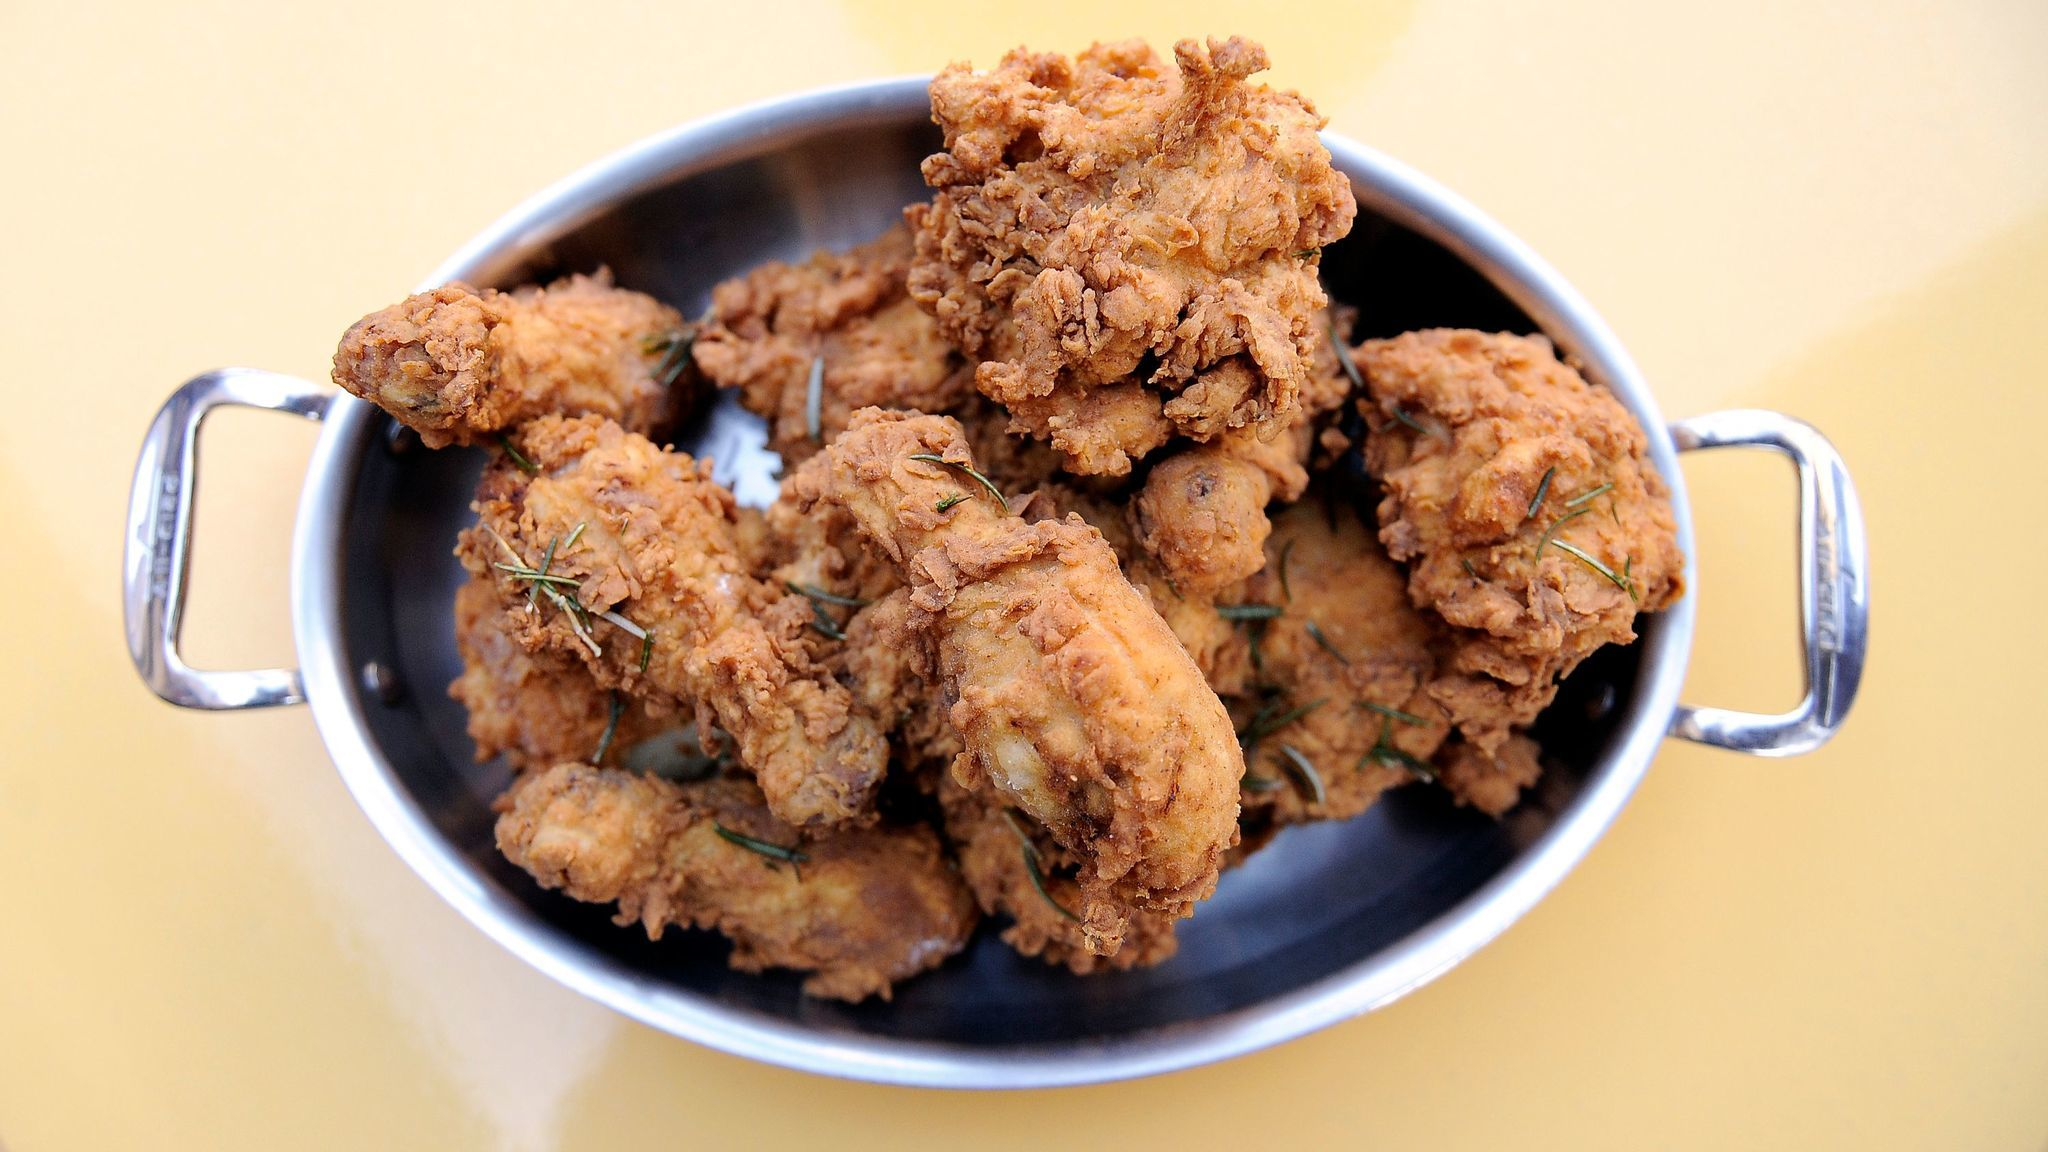 Bouchon serves fried chicken every Monday night.